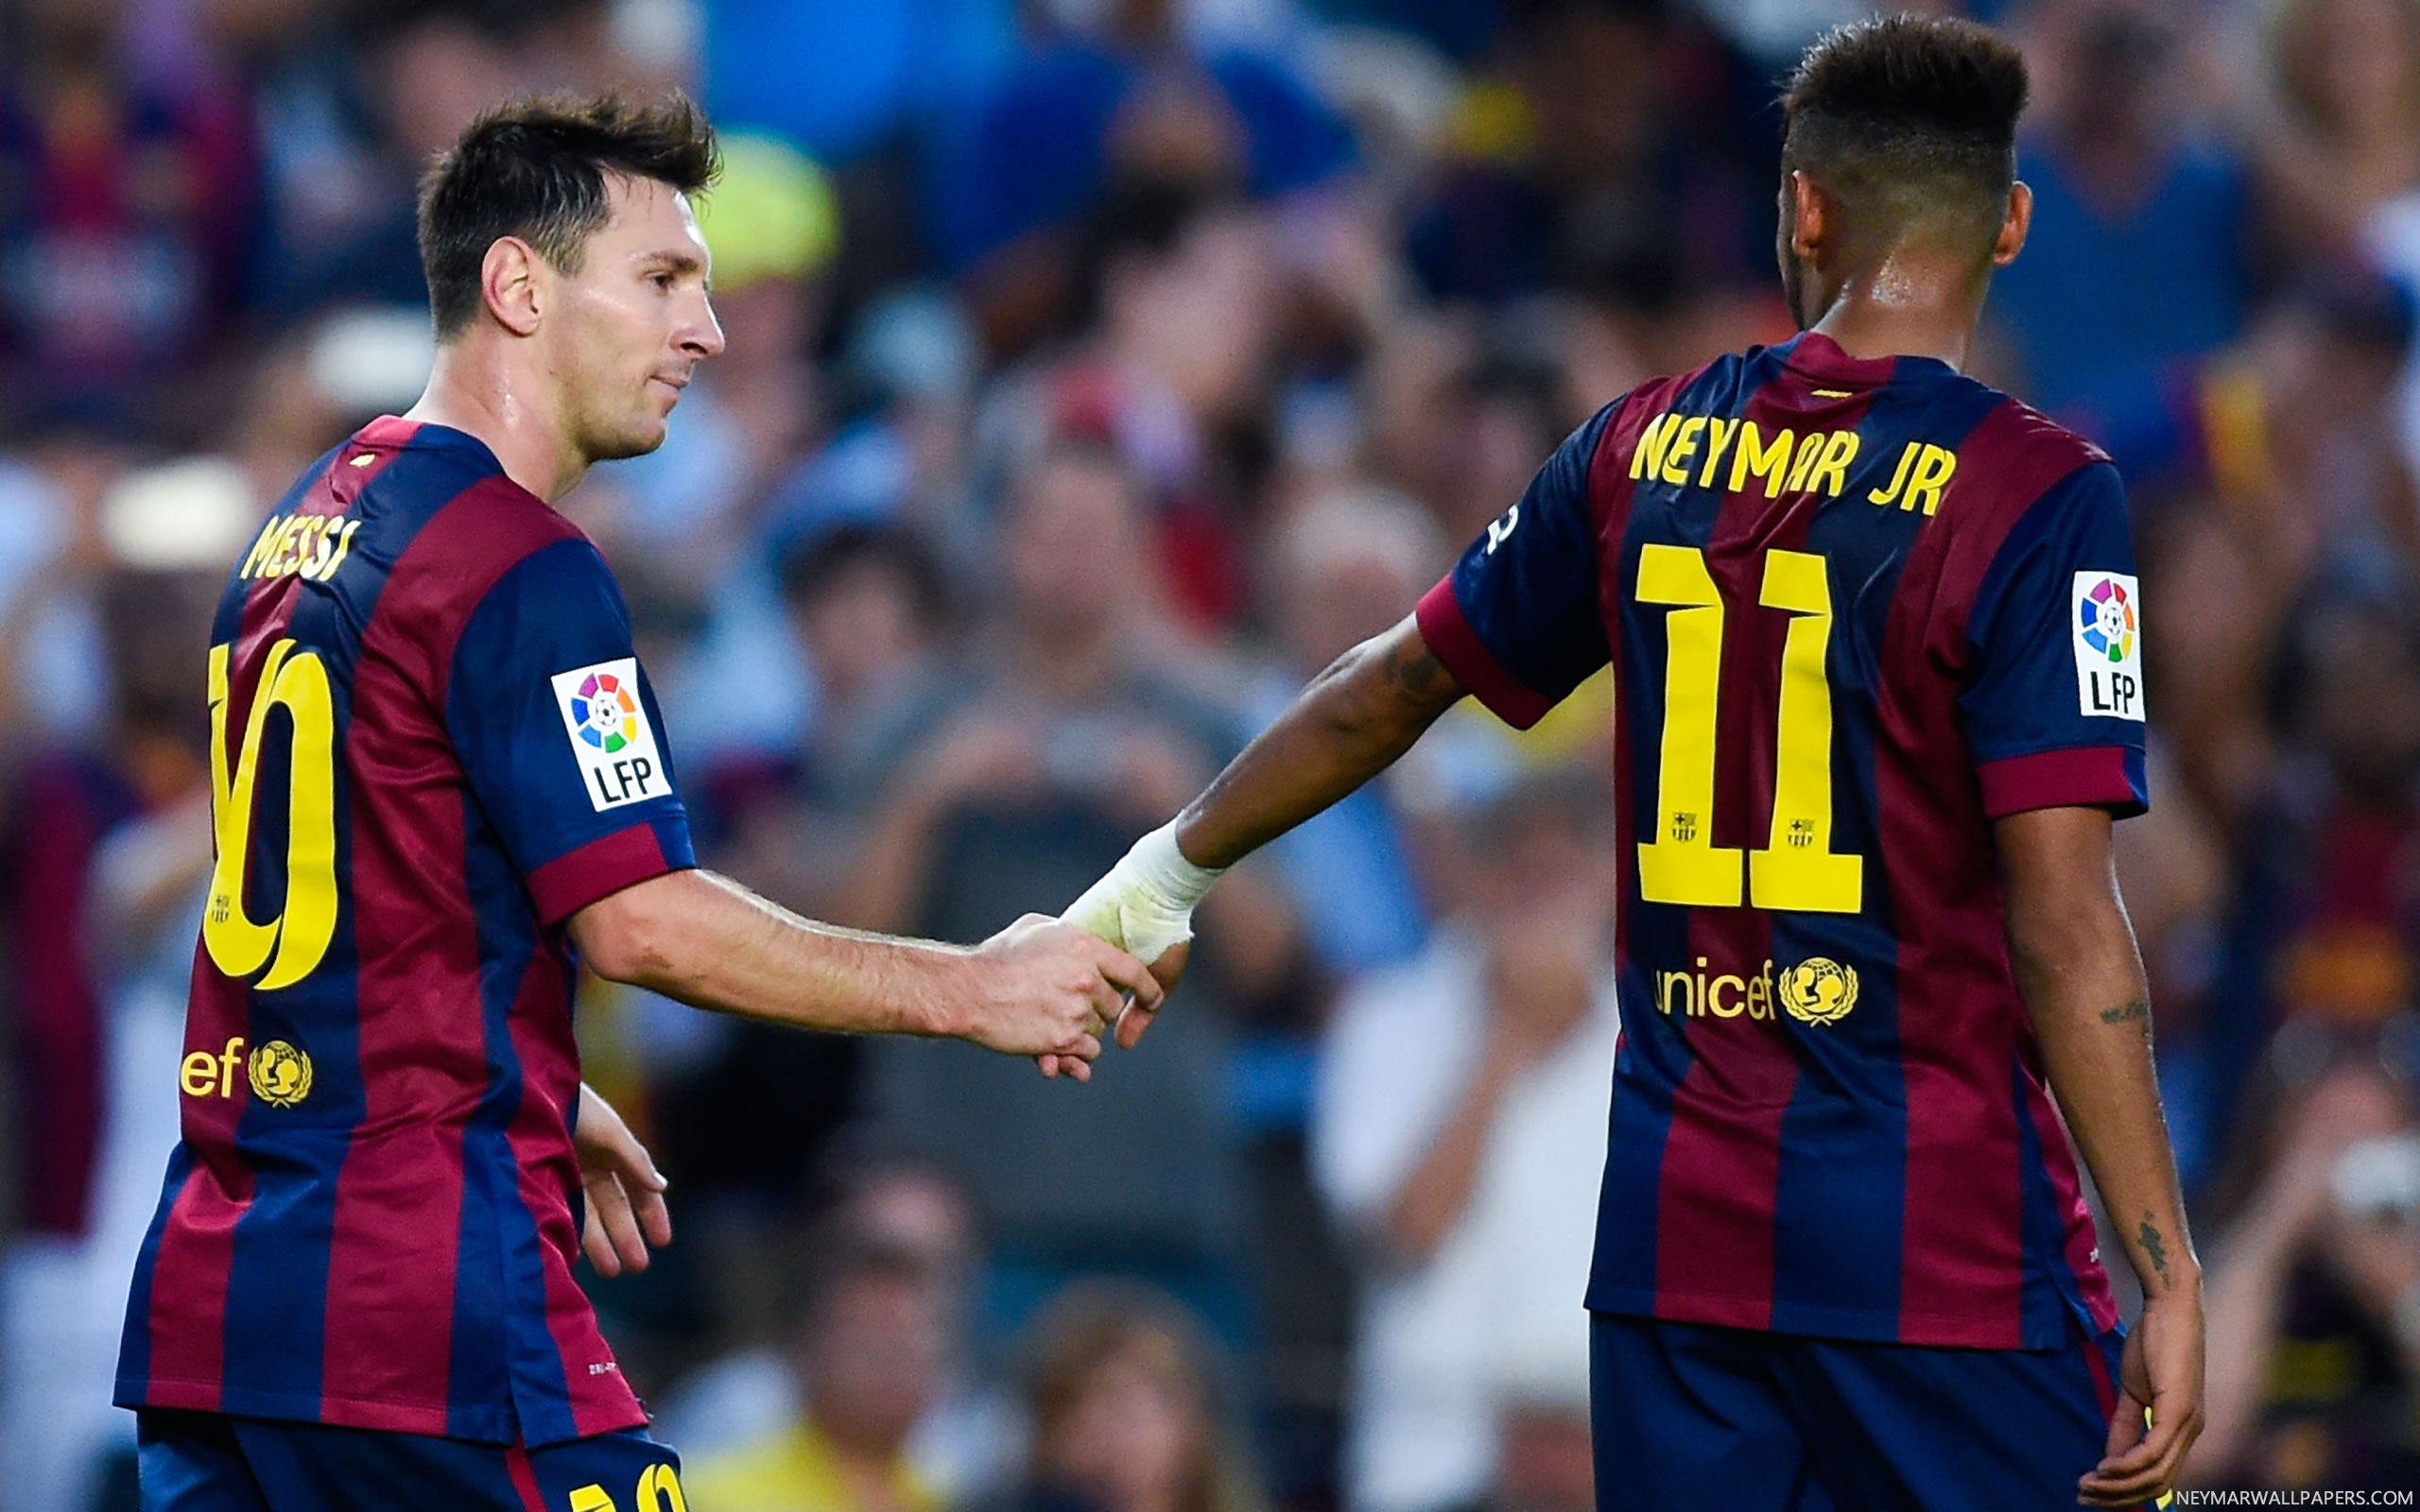 e61936334fe Neymar and Messi holding hands - Neymar Wallpapers